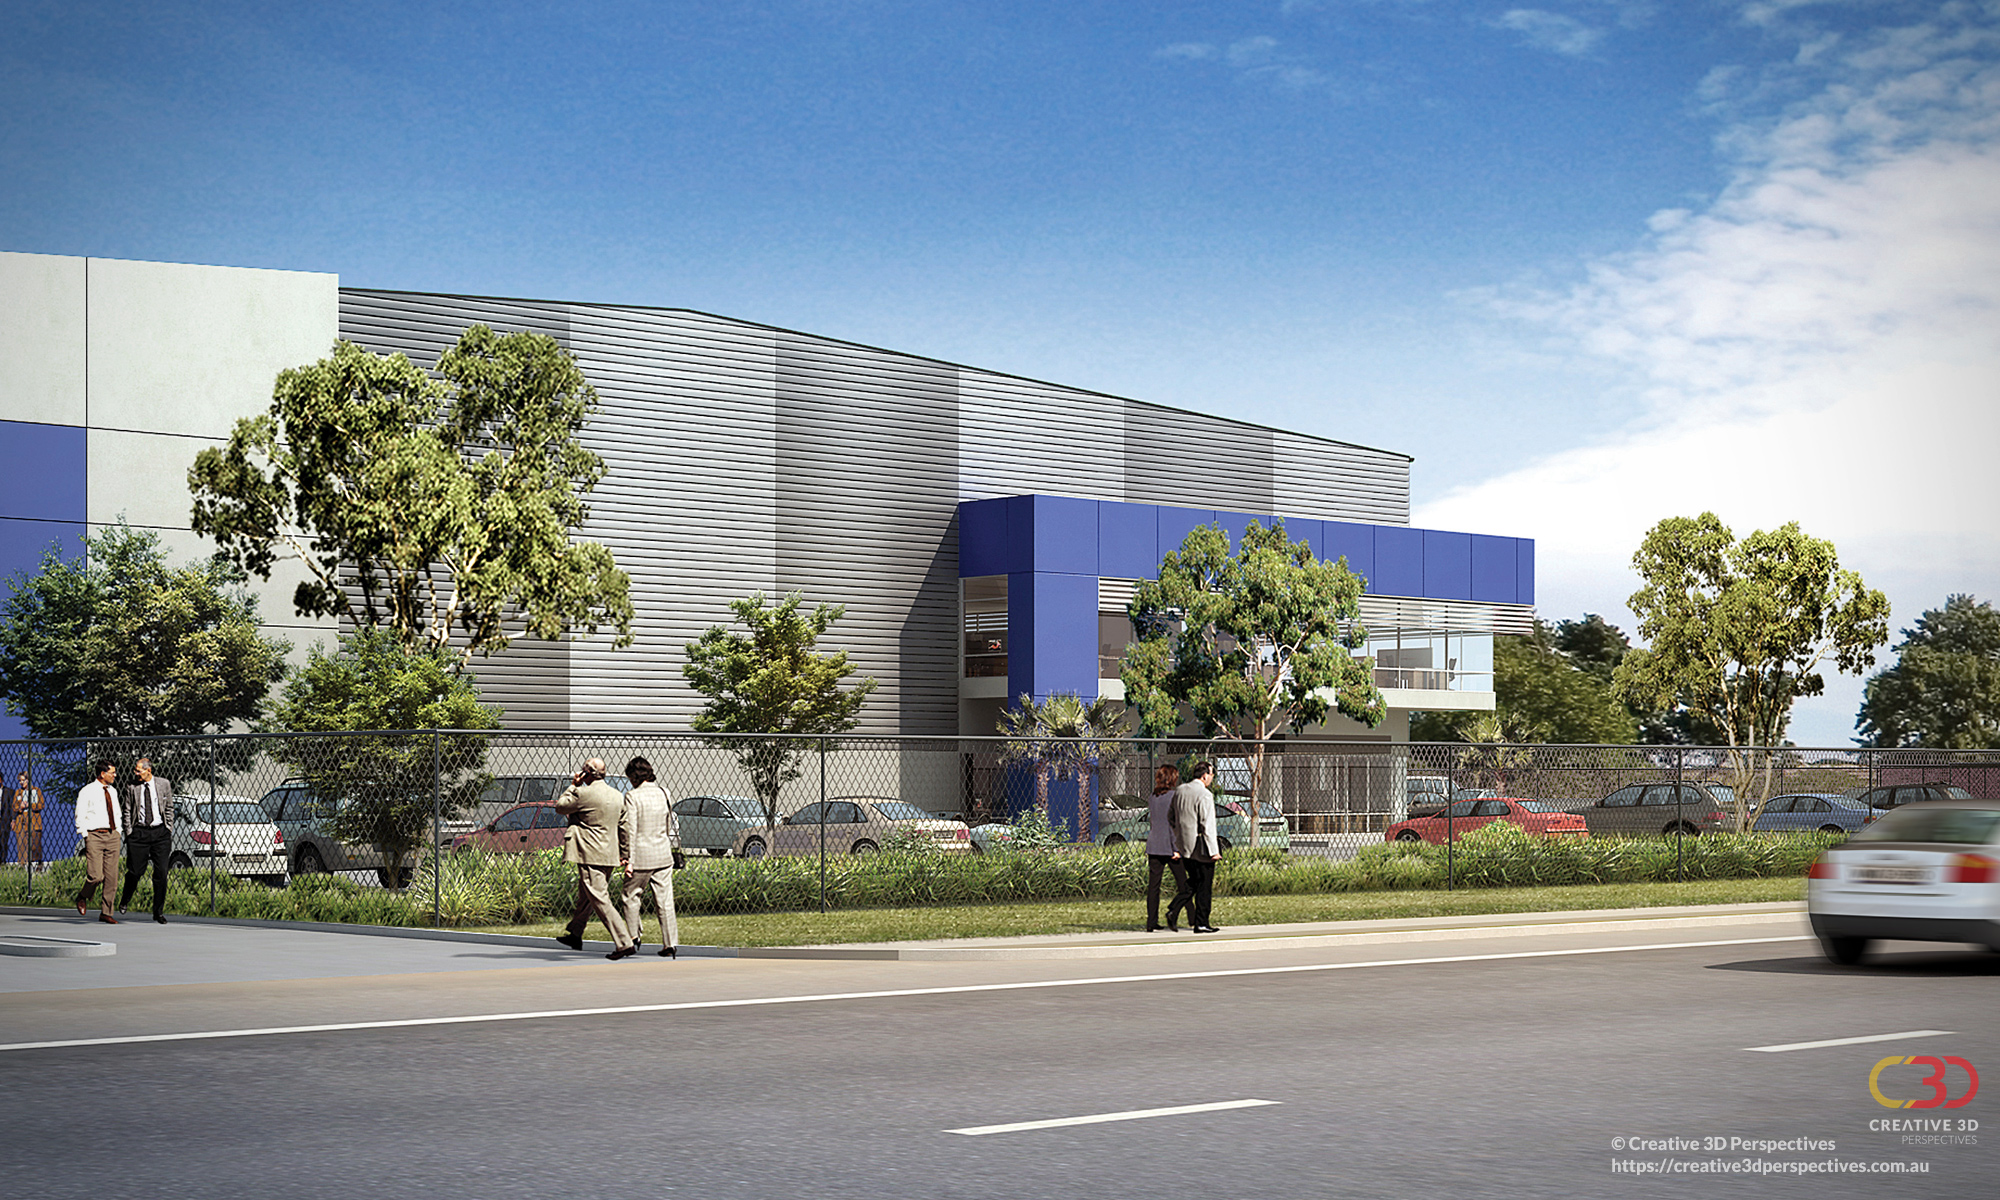 2 Glenndenning NSW Warehouse, exterior streetscape façade, Creative 3D Perspective